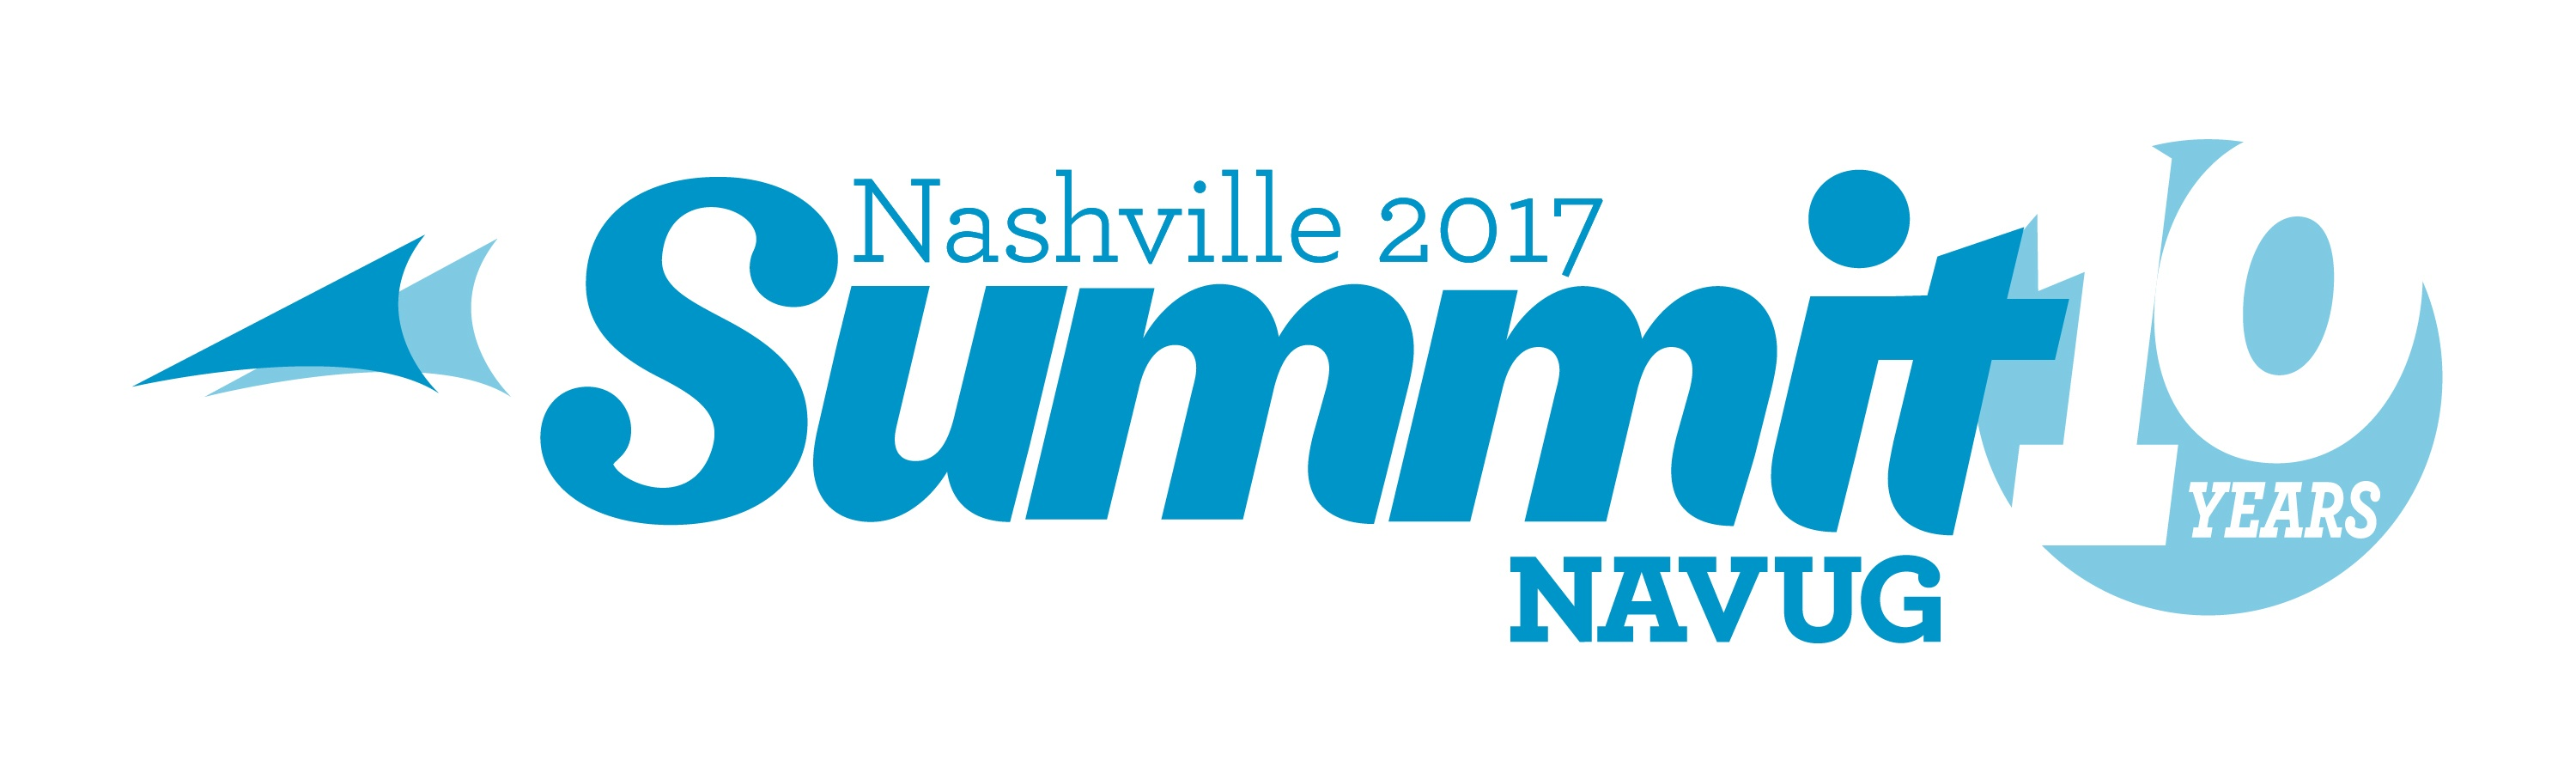 Summit Nashville - NAVUG Color.jpg